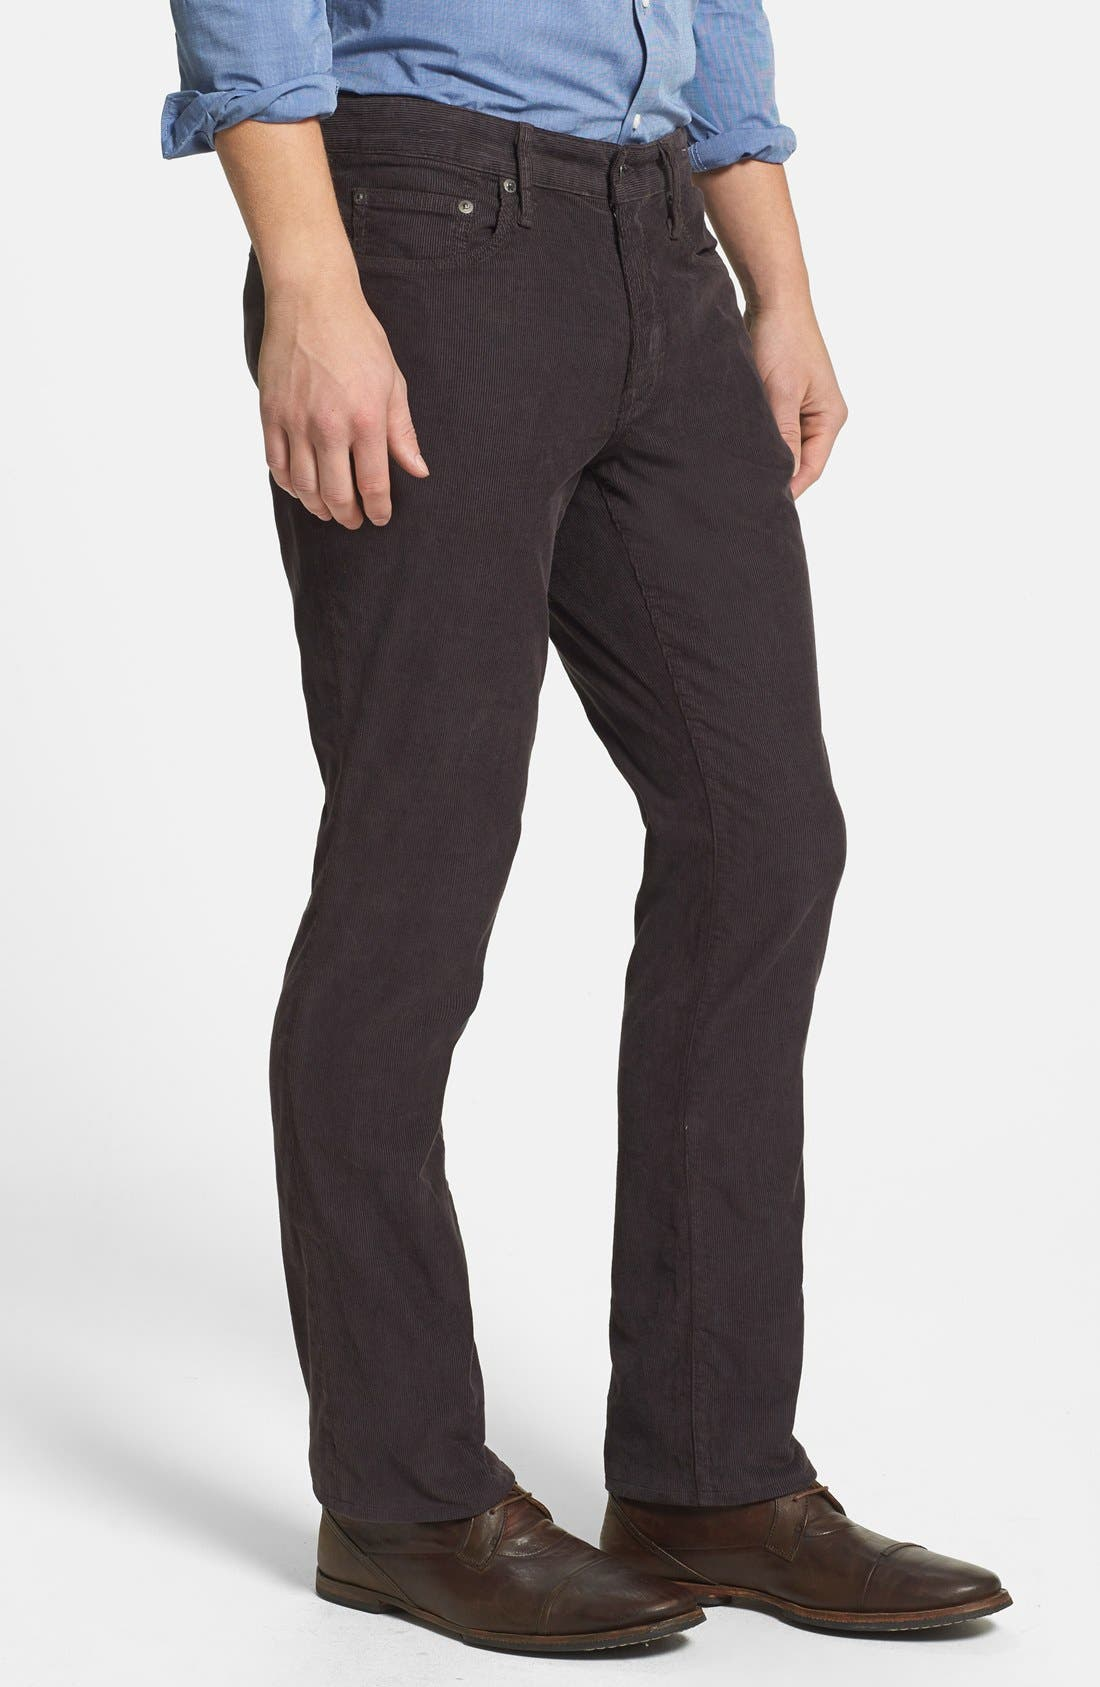 BONOBOS,                             Straight Leg Five-Pocket Corduroy Pants,                             Alternate thumbnail 2, color,                             020